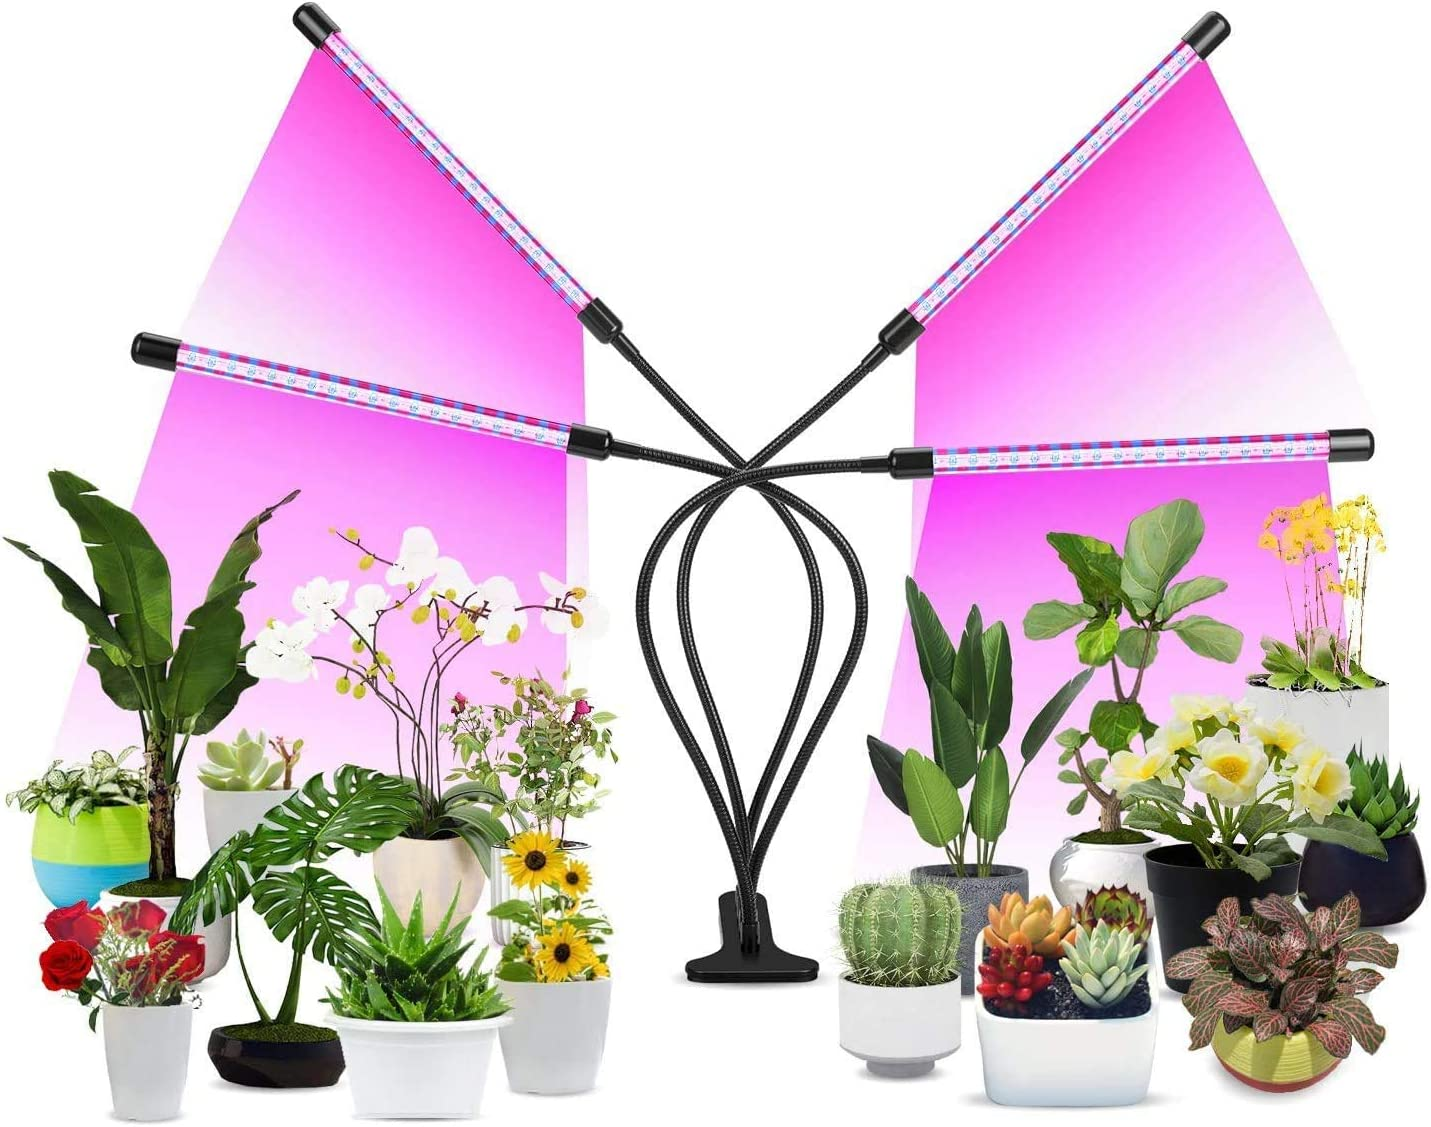 Grow Light, Grow Light for Indoor Plants 9 Dimmable Level Full Spectrum Grow Lamp with Auto On Off 3 9 12H Timer 10 Dimmable Levels Lightness LED Grow Lamp